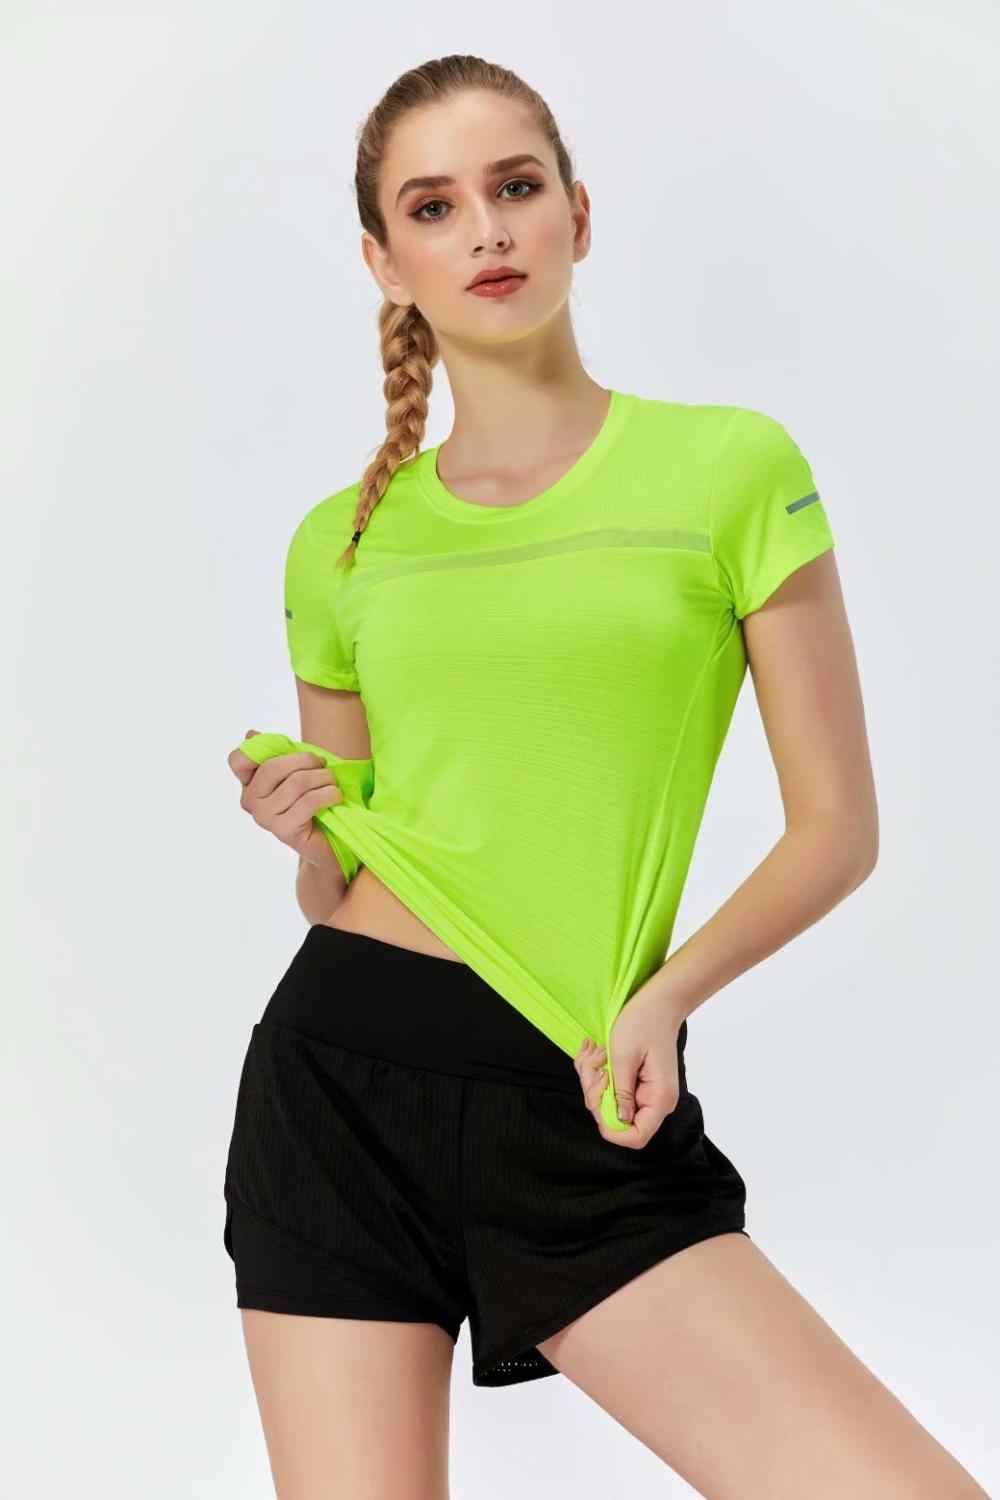 2020 New Yoga Wear Running Wear Women's Wear